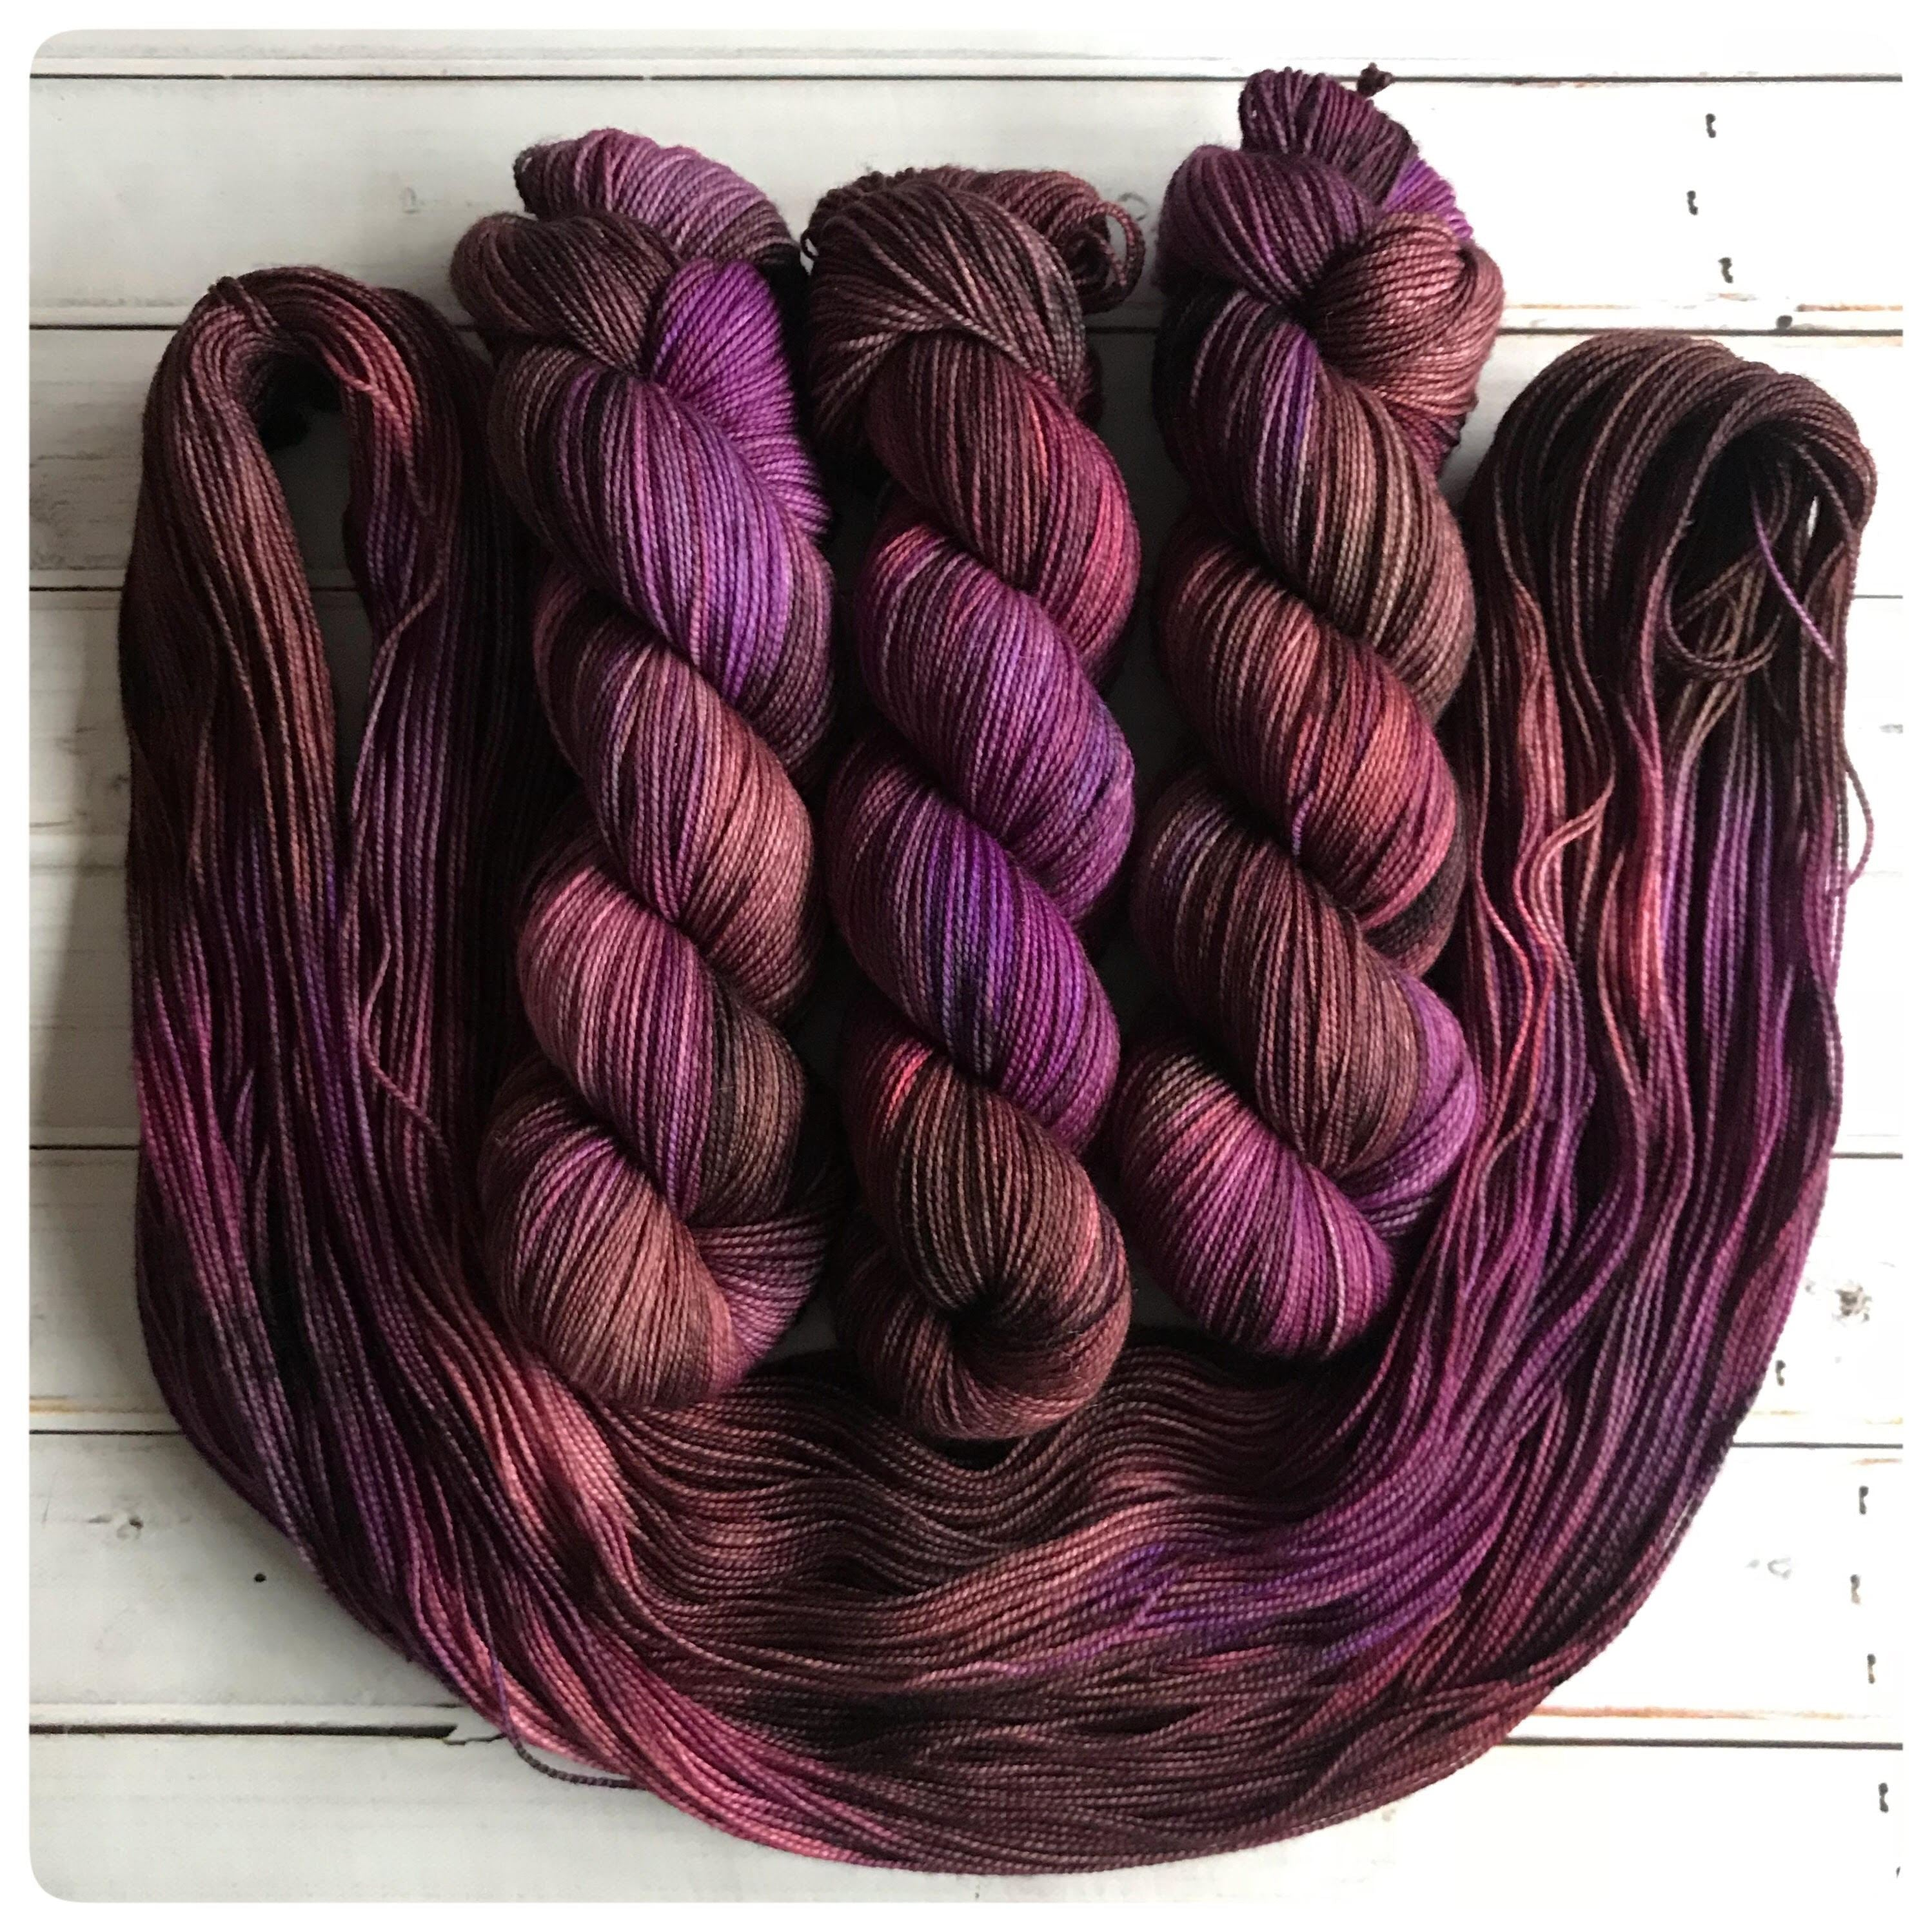 OOAK1, fingering-weight hand dyed yarn